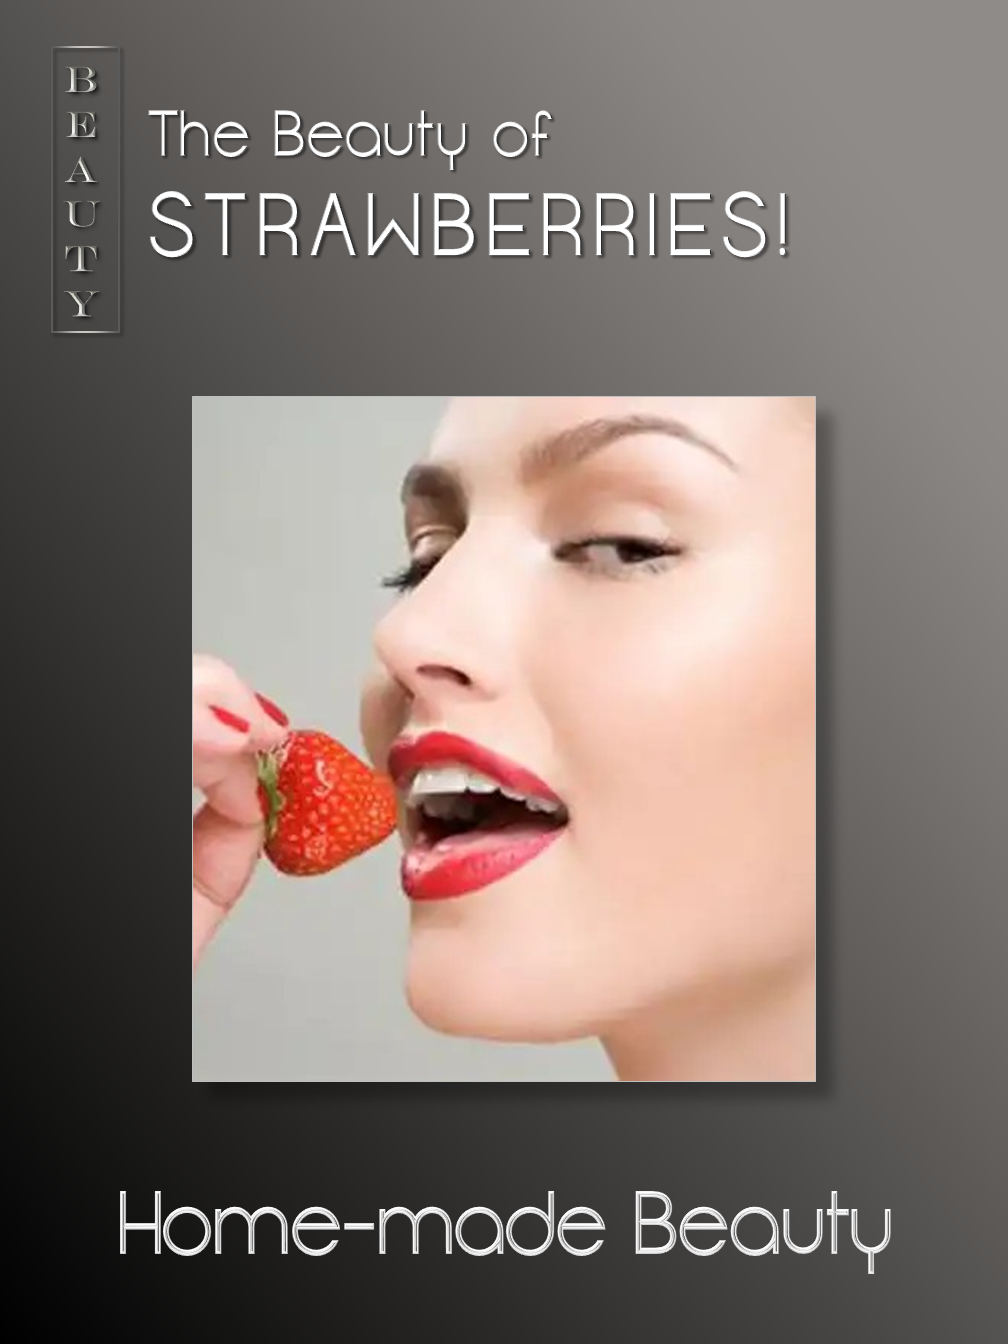 The Beauty of Strawberries